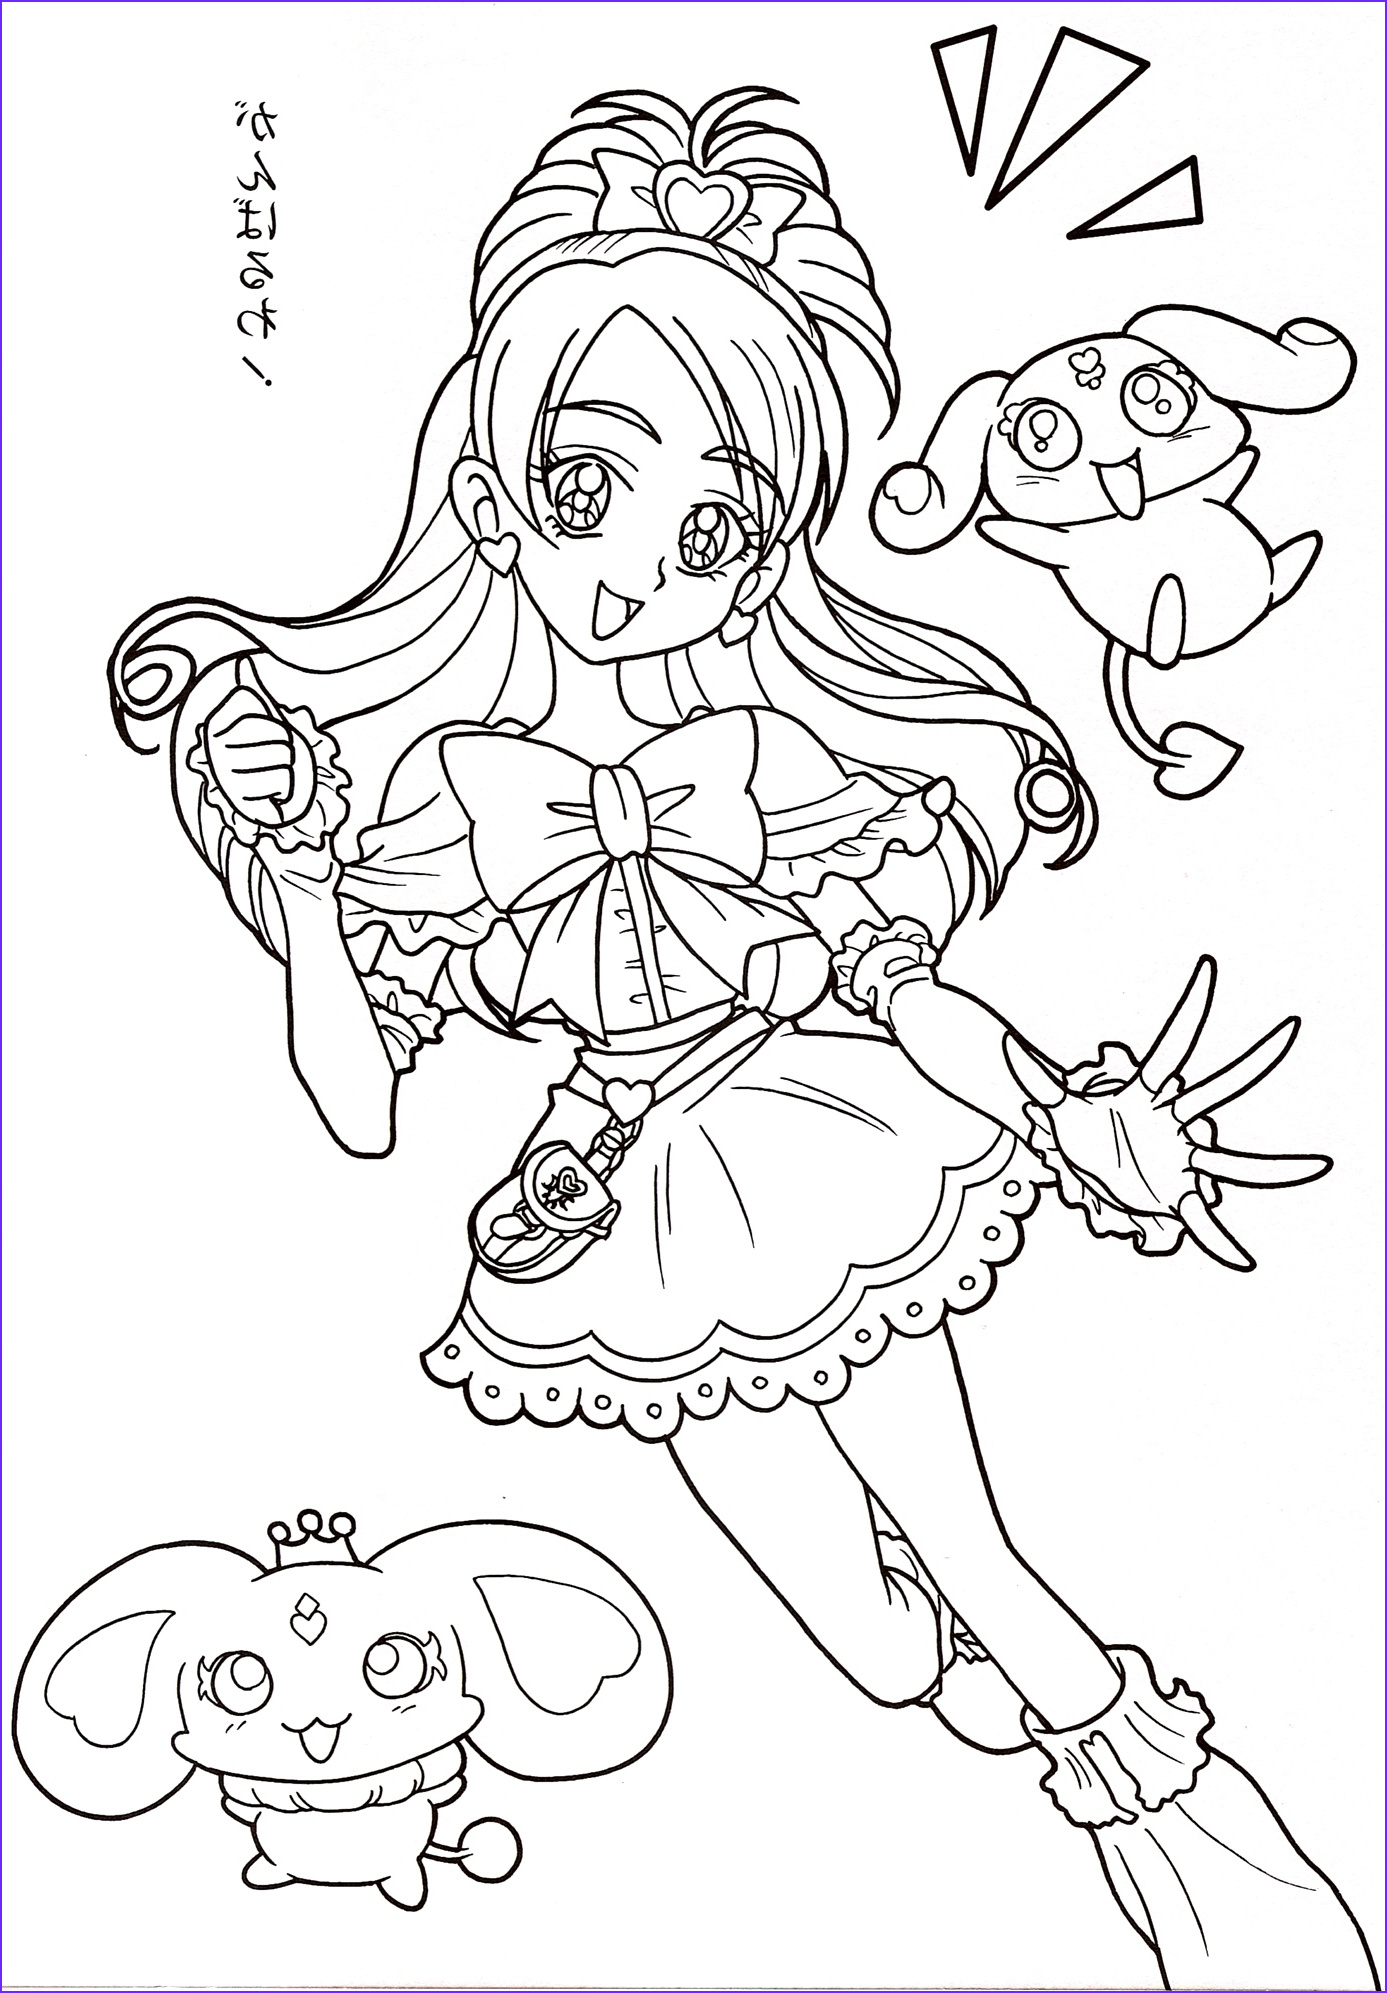 Precure Coloring Page Awesome Gallery Pretty Cure Coloring Book